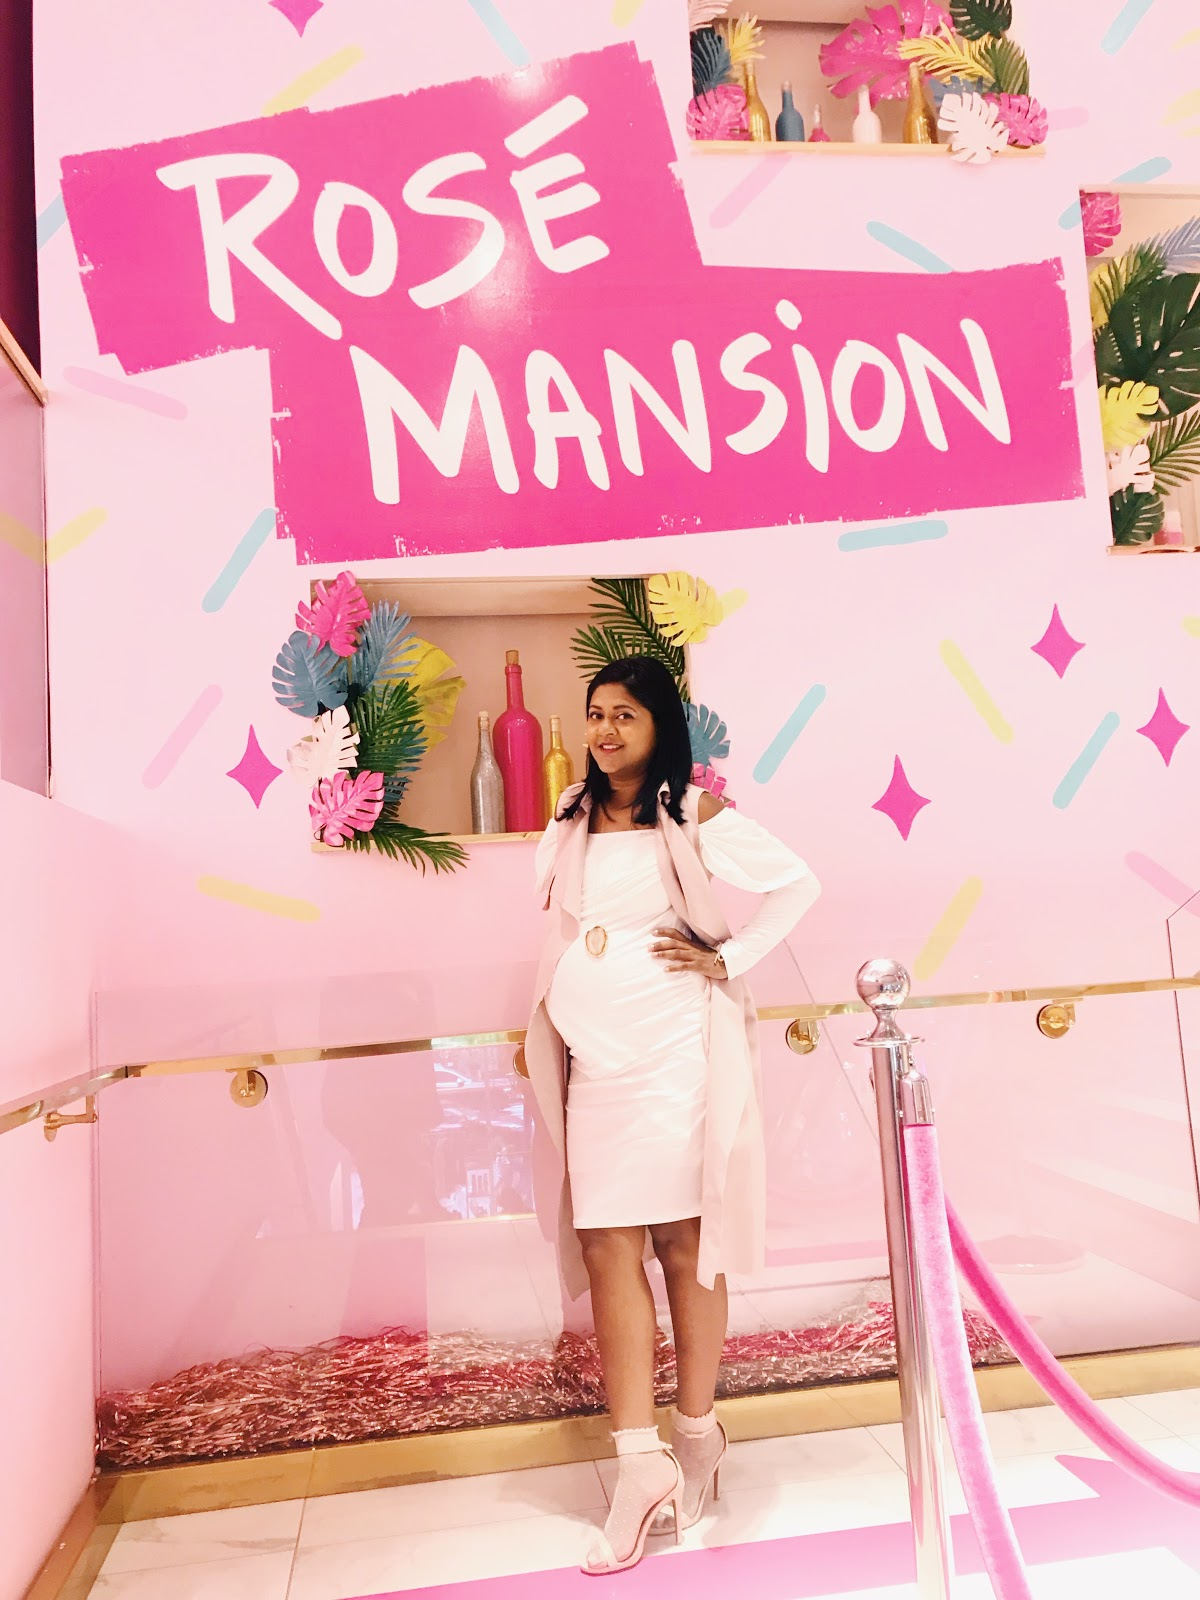 Rose mansion pop up experience in new york